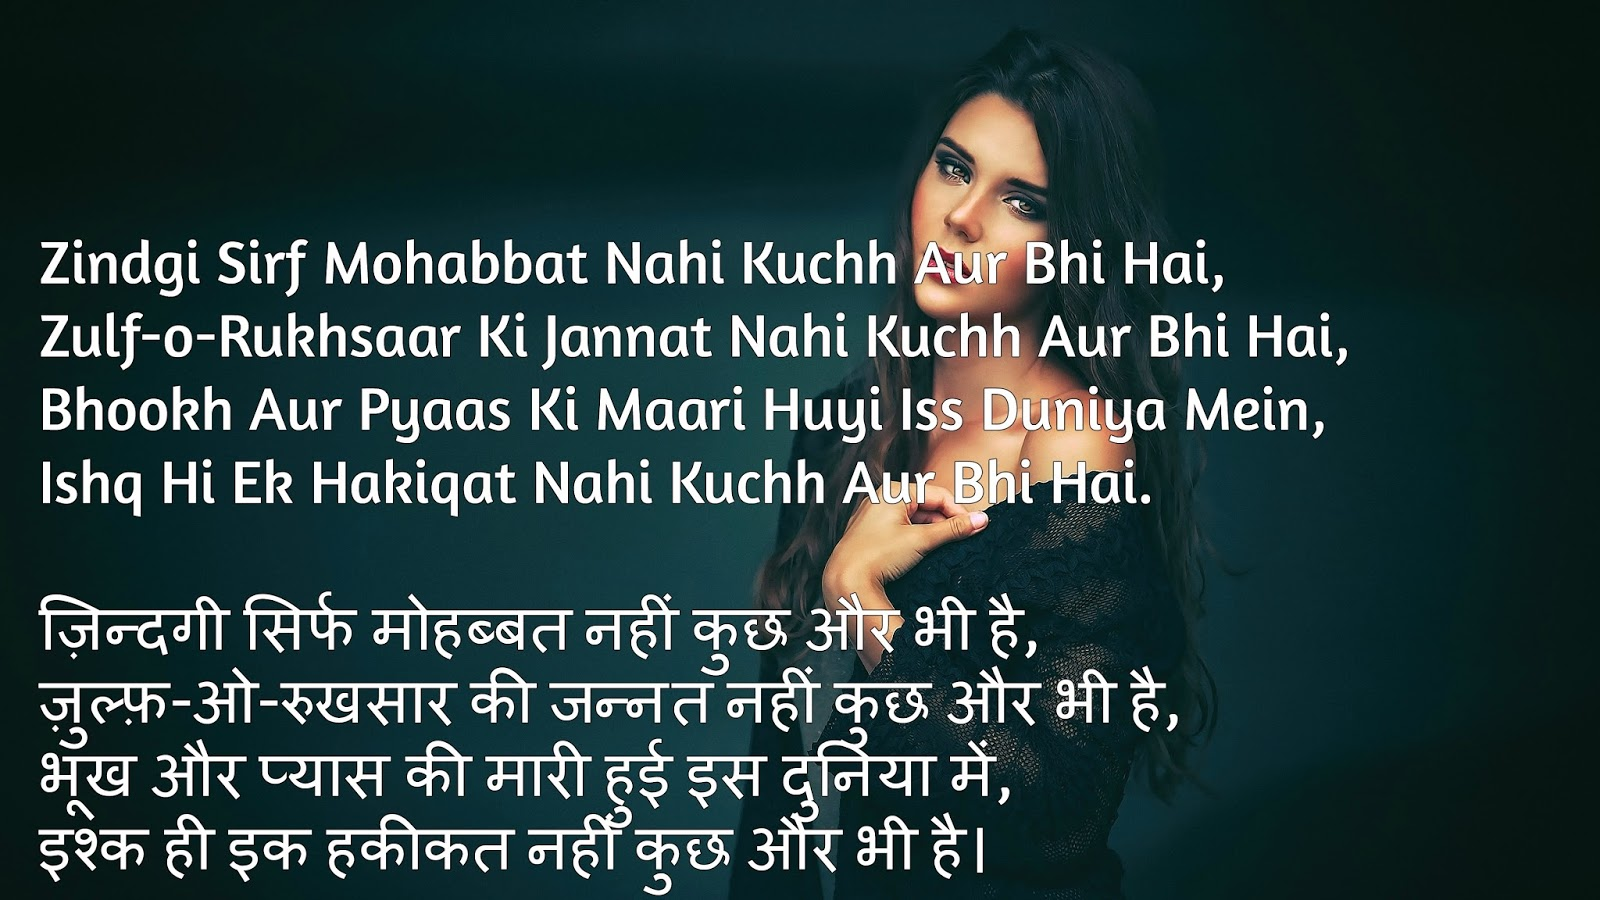 Shayari Hi Shayari Excellent Images Download Dard Ishq Love Zindagi